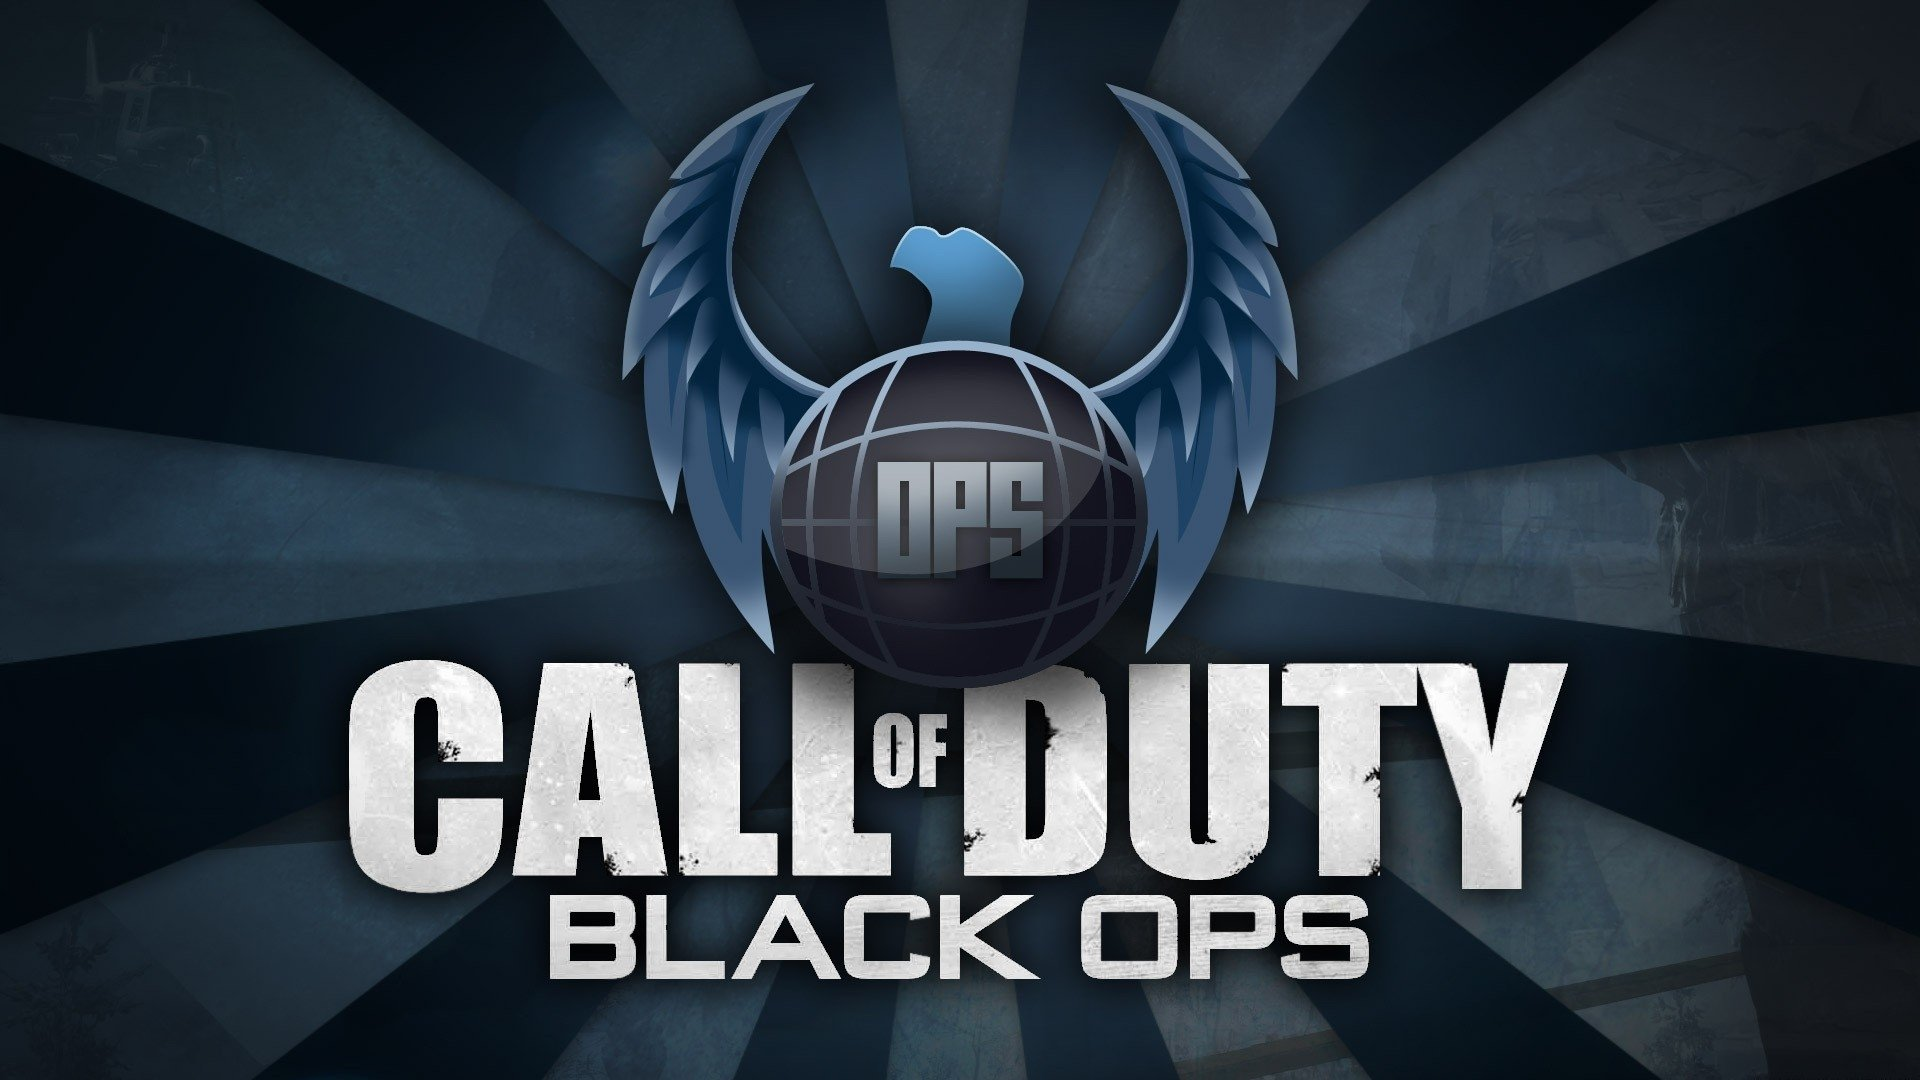 22 Call Of Duty: Black Ops HD Wallpapers   Backgrounds - Wallpaper